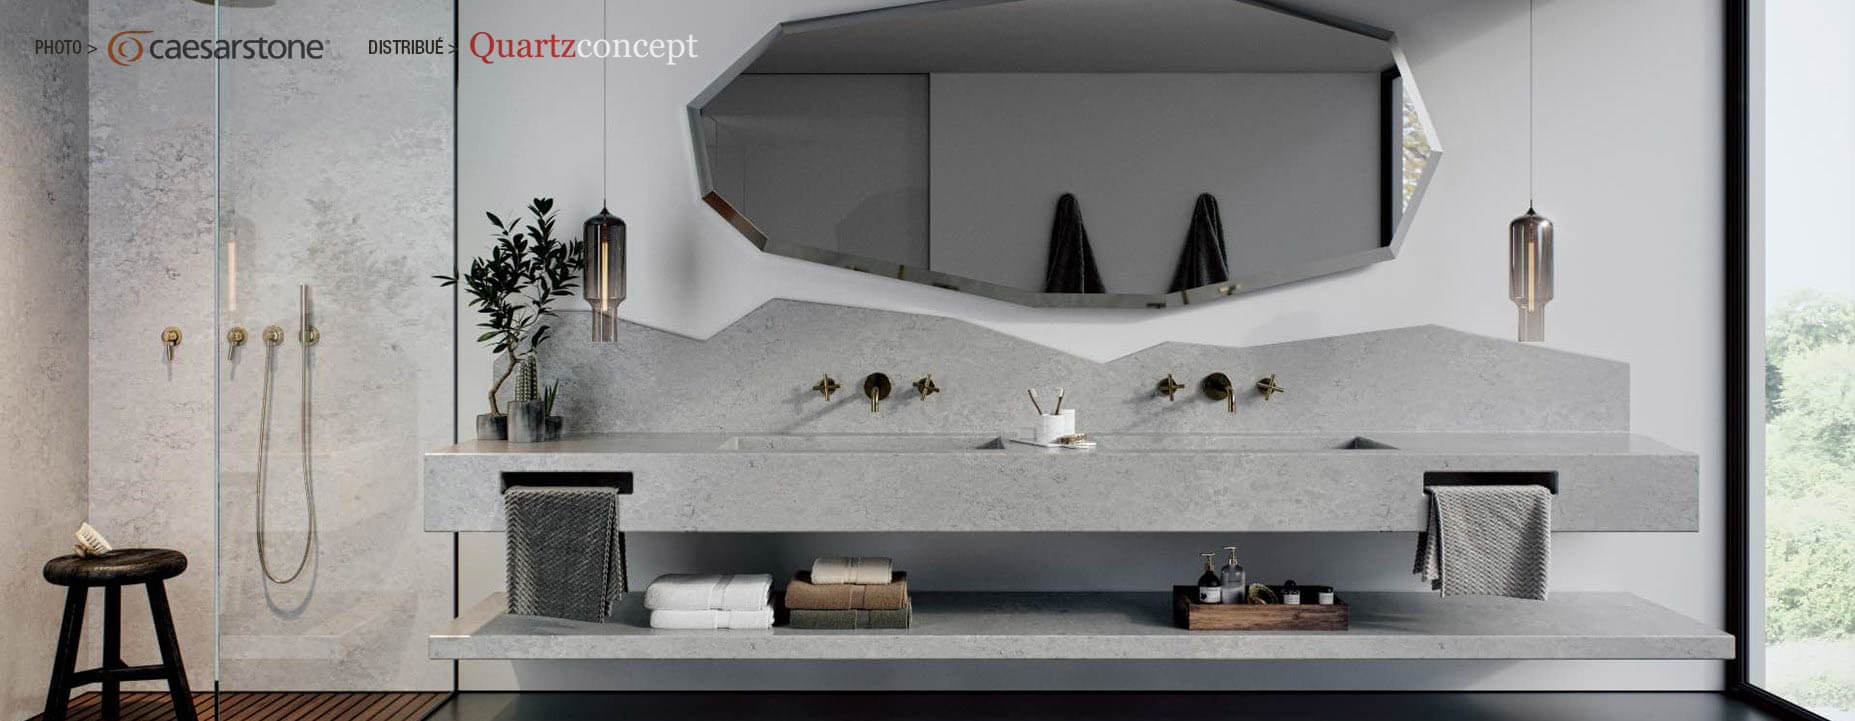 Quartz Caesarstone couleur 4044 airy concrete